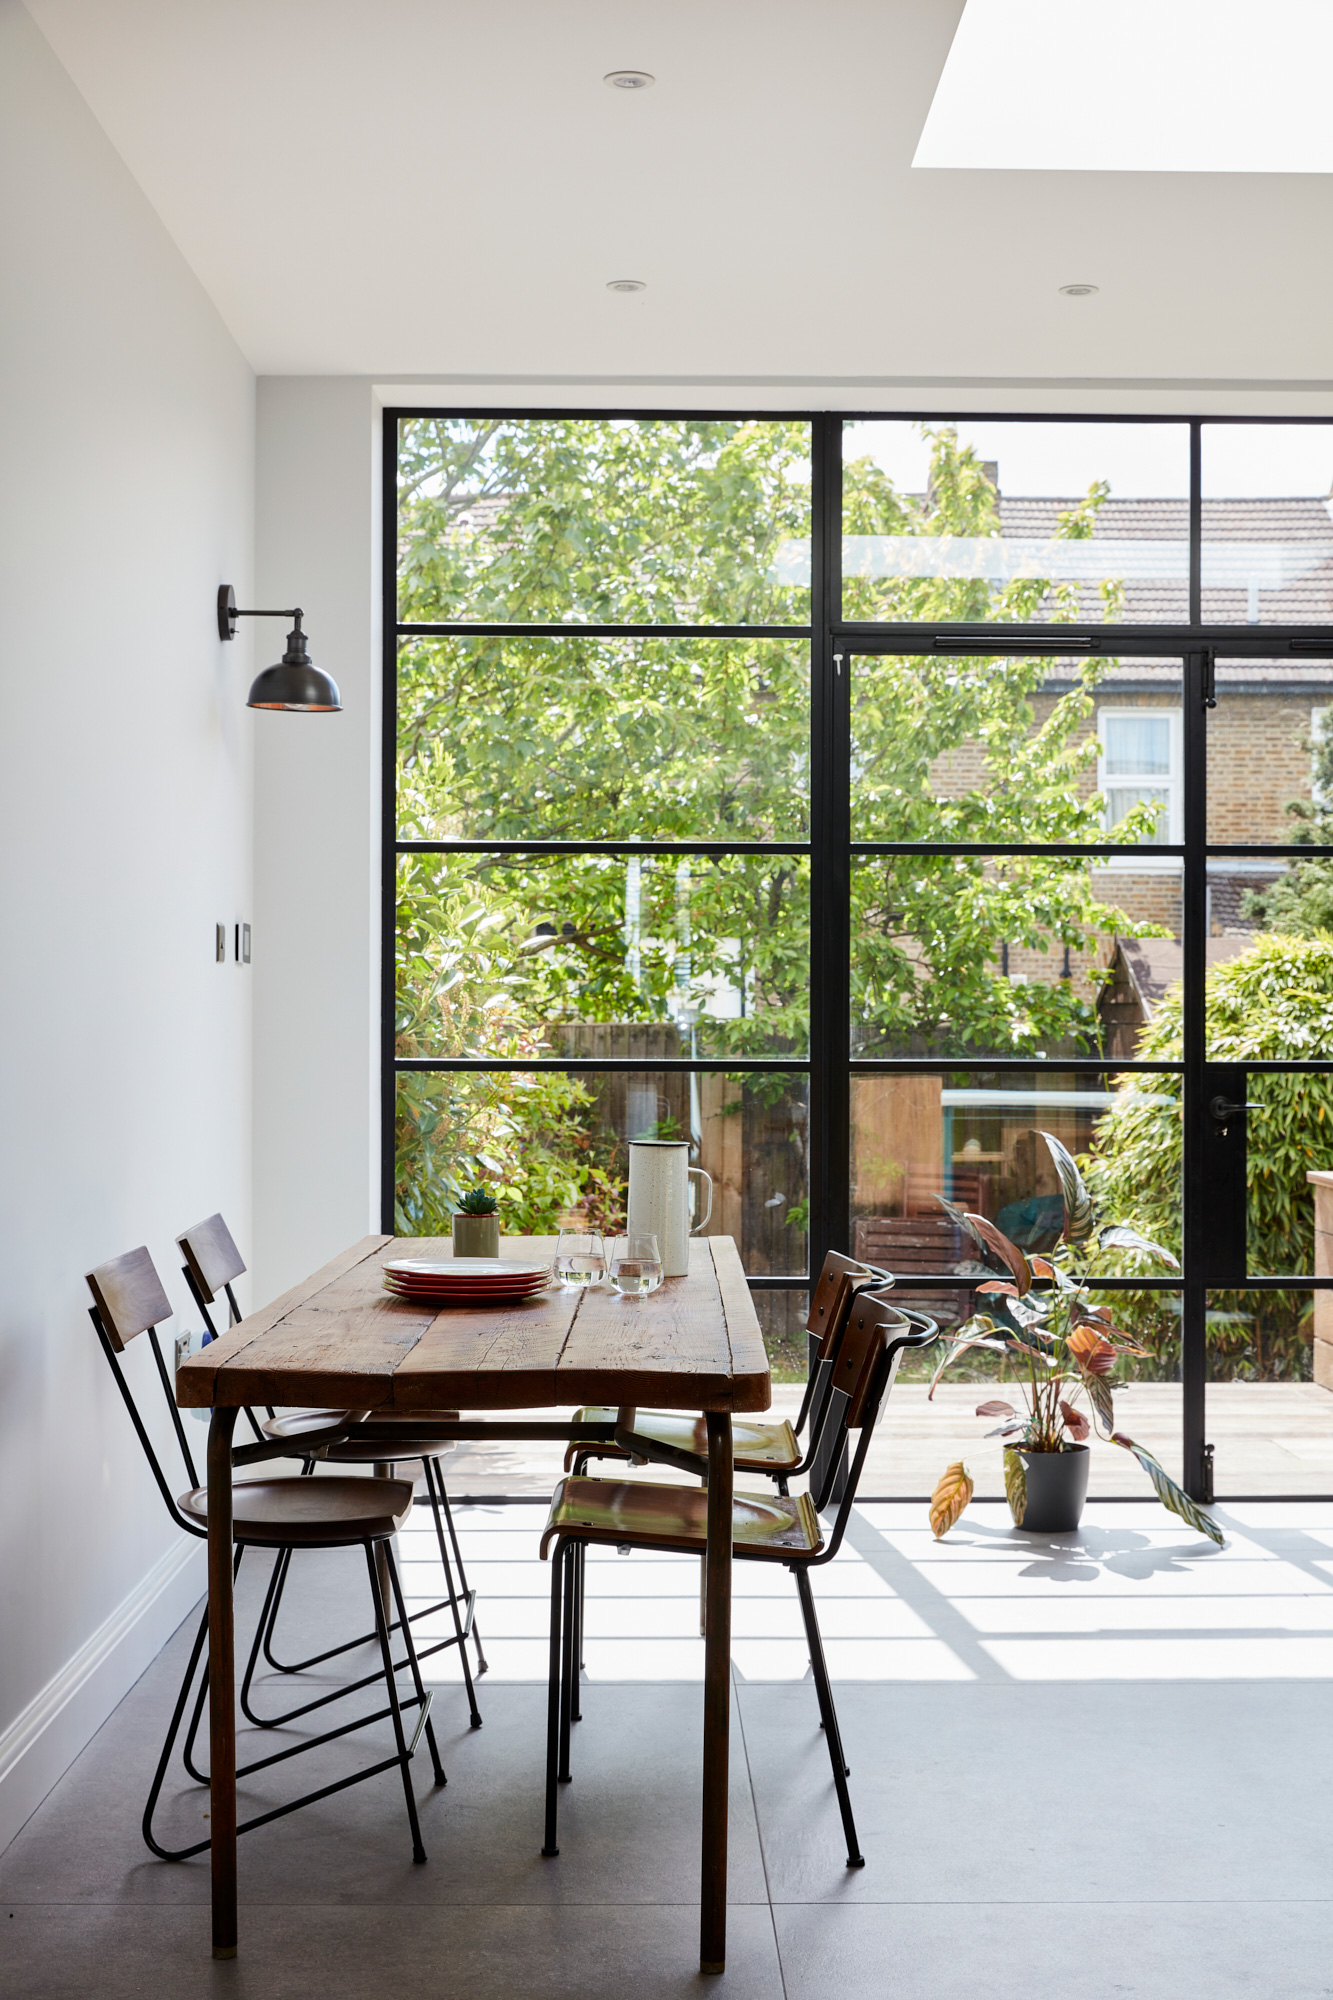 Crittall style doors with reclaimed oak kitchen table